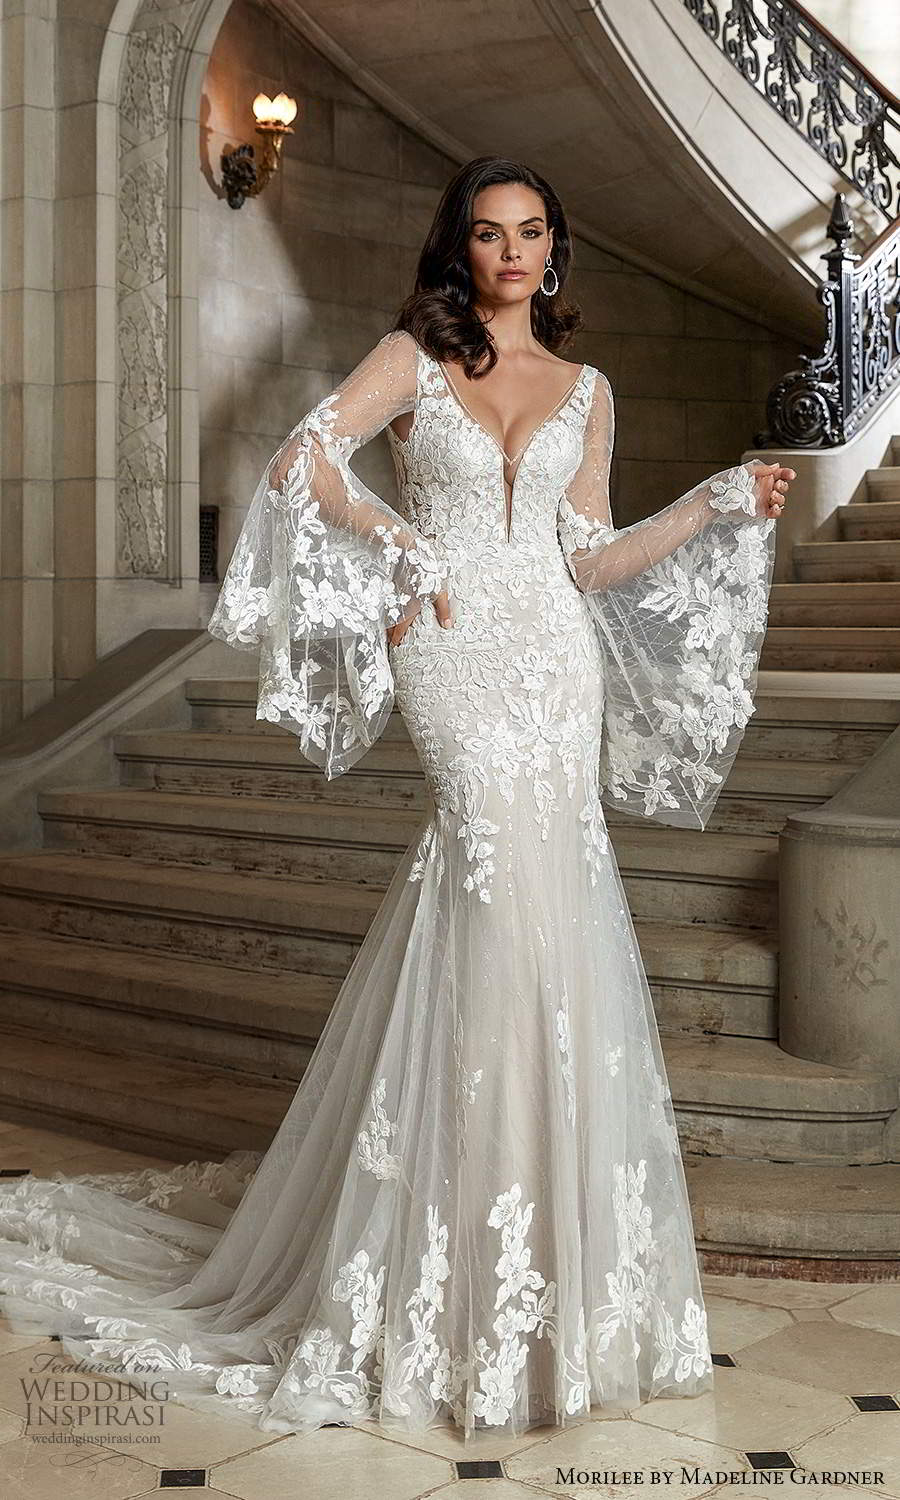 morilee madeline gardner spring 2022 bridal detachable sheer long flare sleeves sleeveless straps plunging v necklne fully embellished fit flare mermaid wedding dress chapel train (3) mv